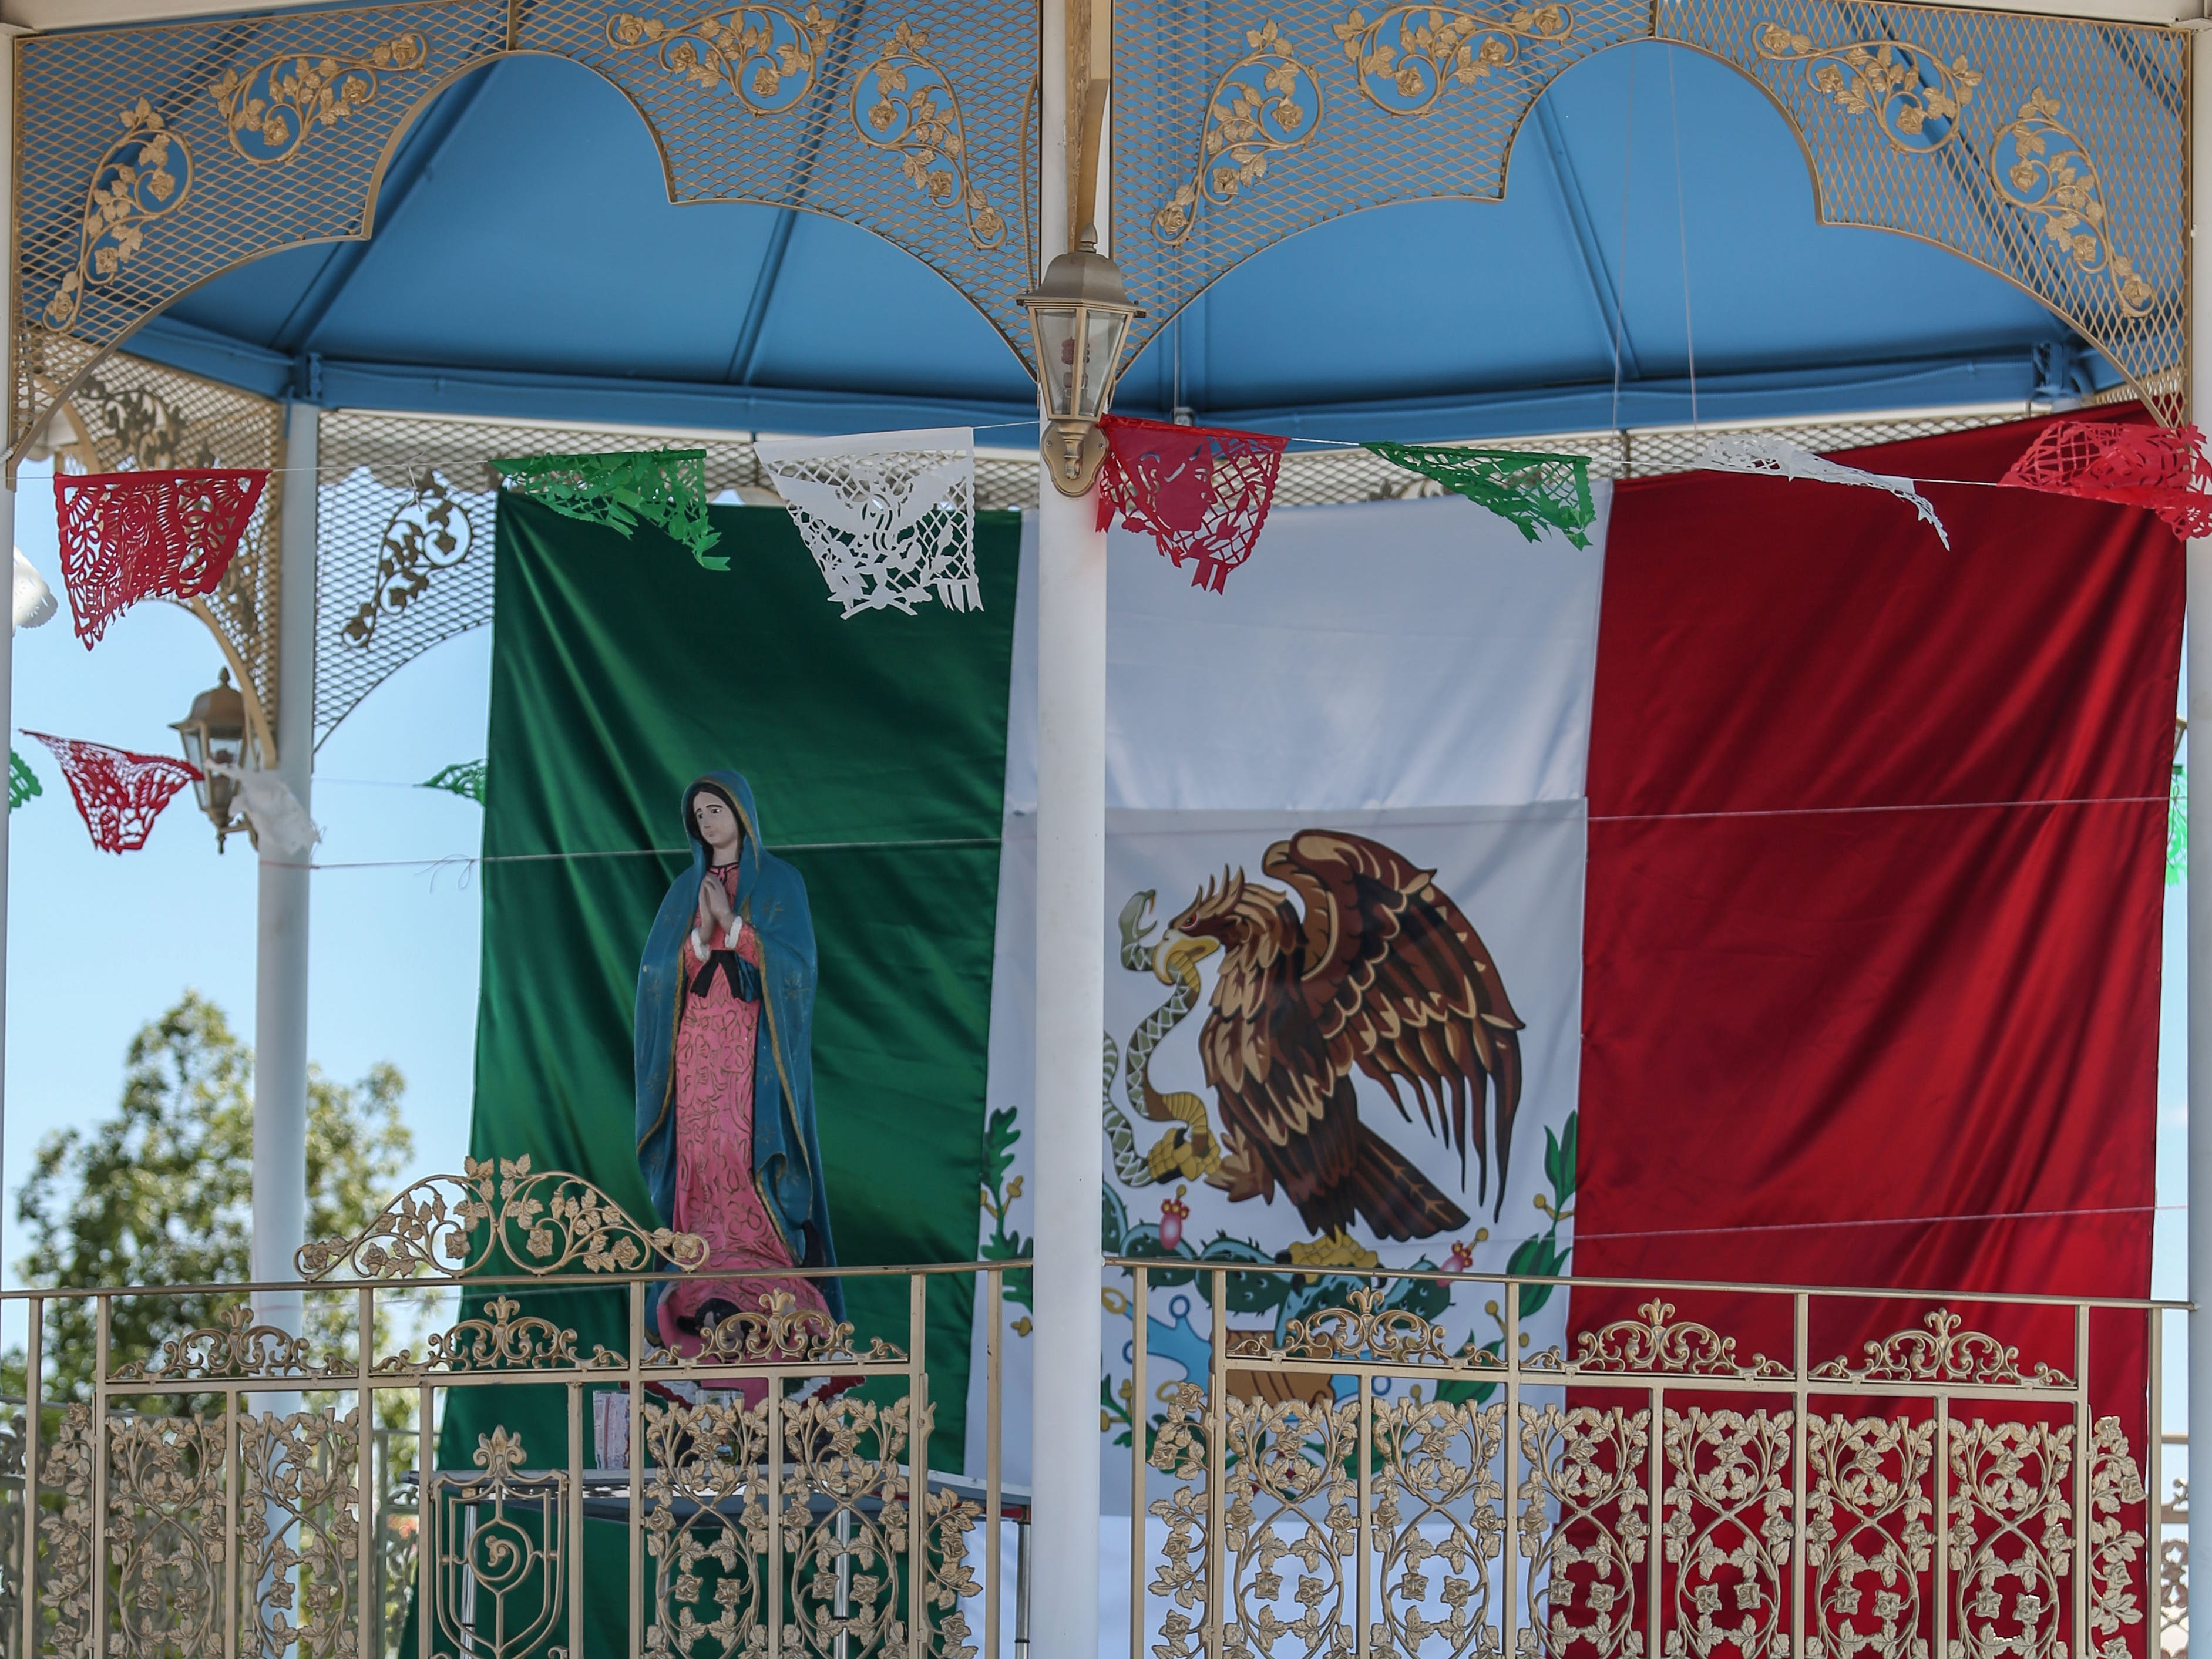 A musician eats at the Mexican independence day celebration at Our Virgin of Guadalupe Church in Mecca on Saturday, September 15, 2018.